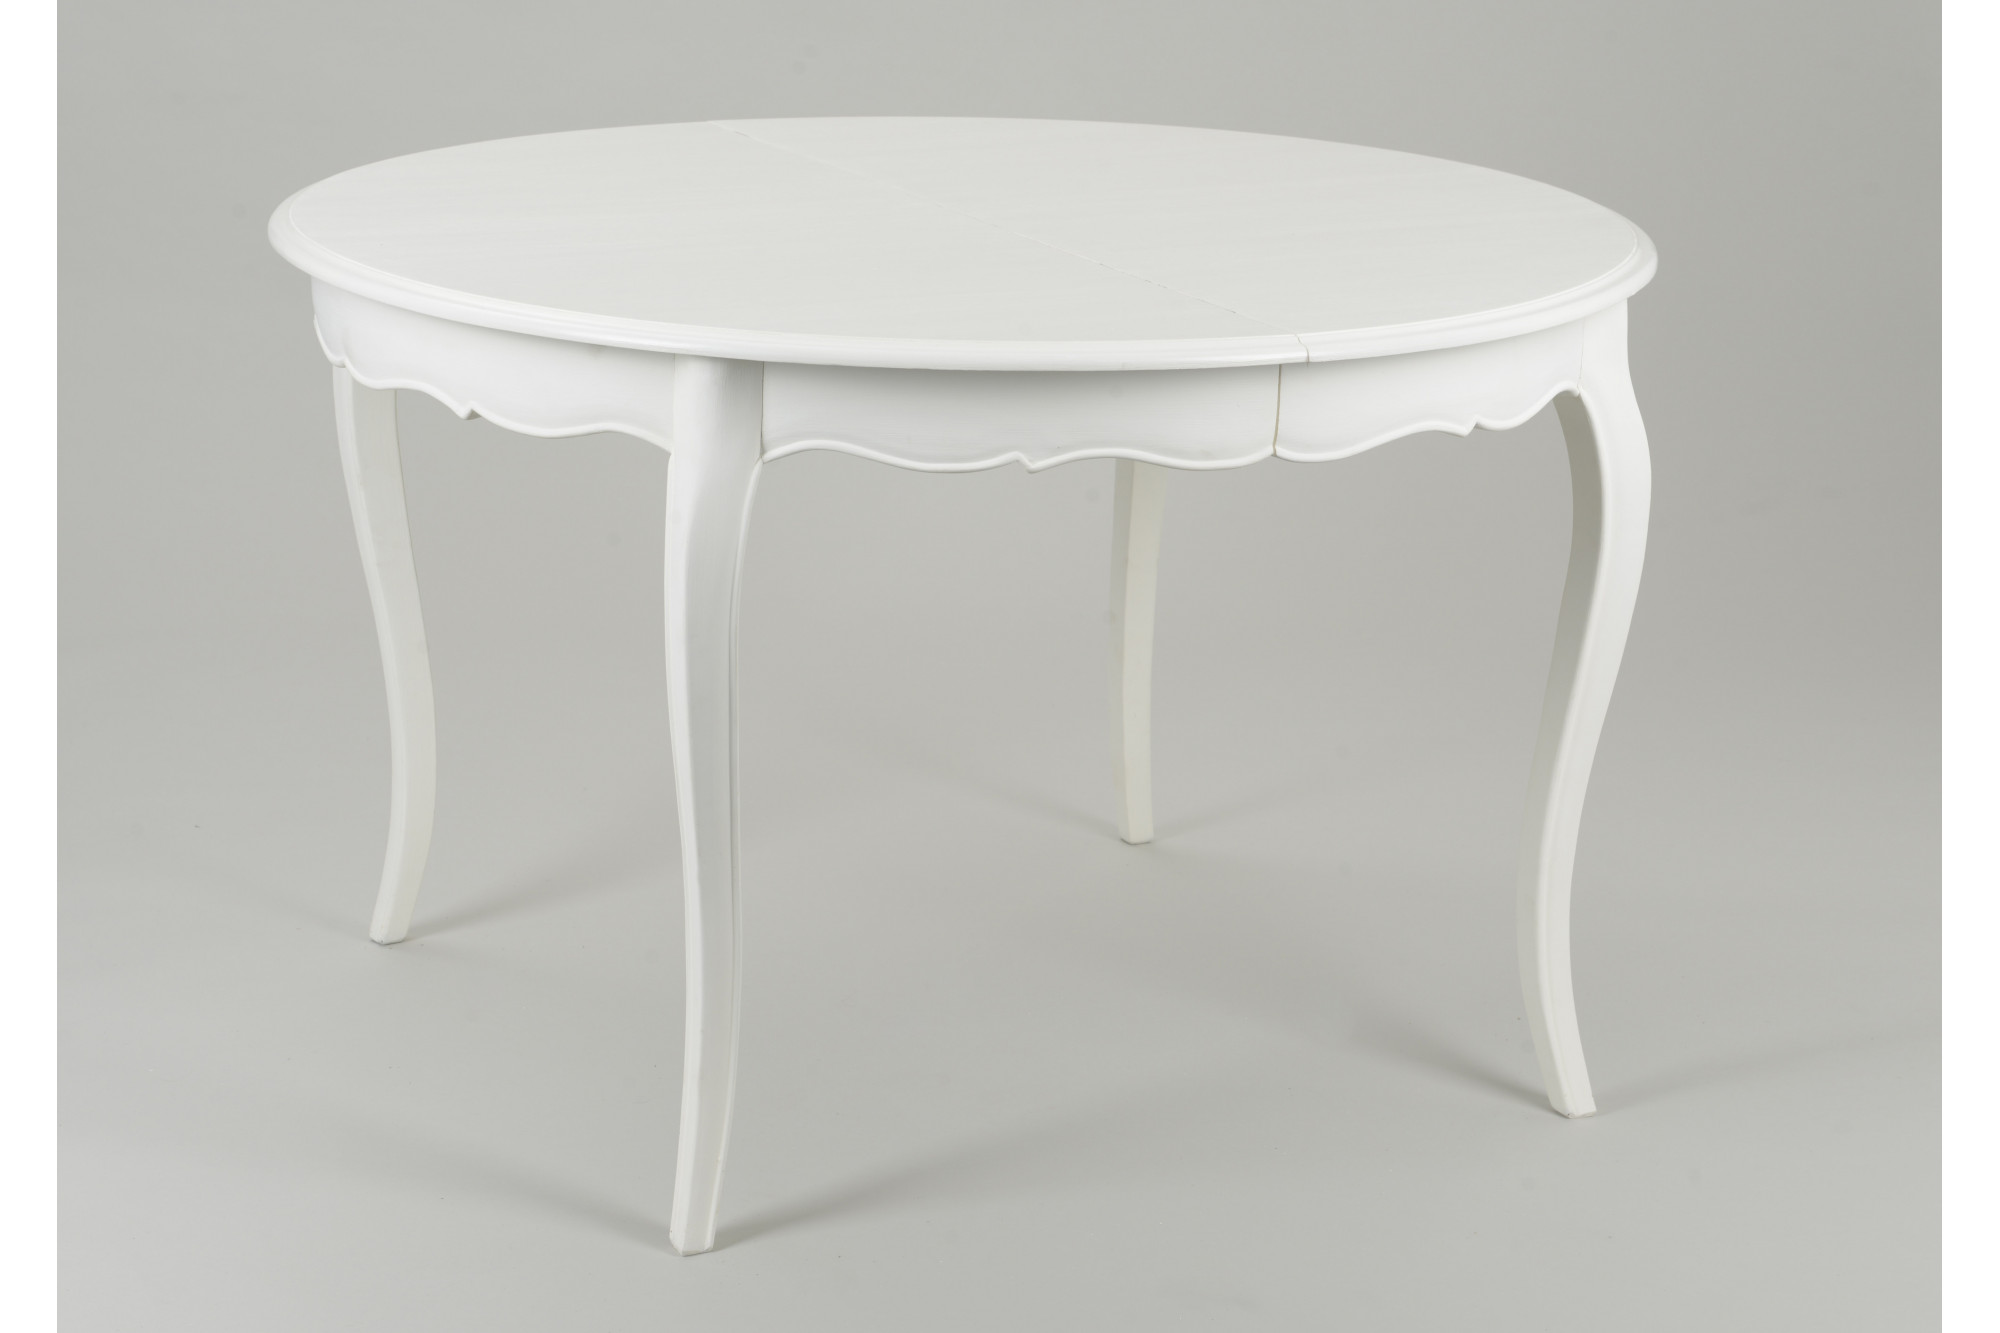 Table Ronde Blanche Et Bois Table Bois Massif Extensible Muriane Ronde Blanche Hellin